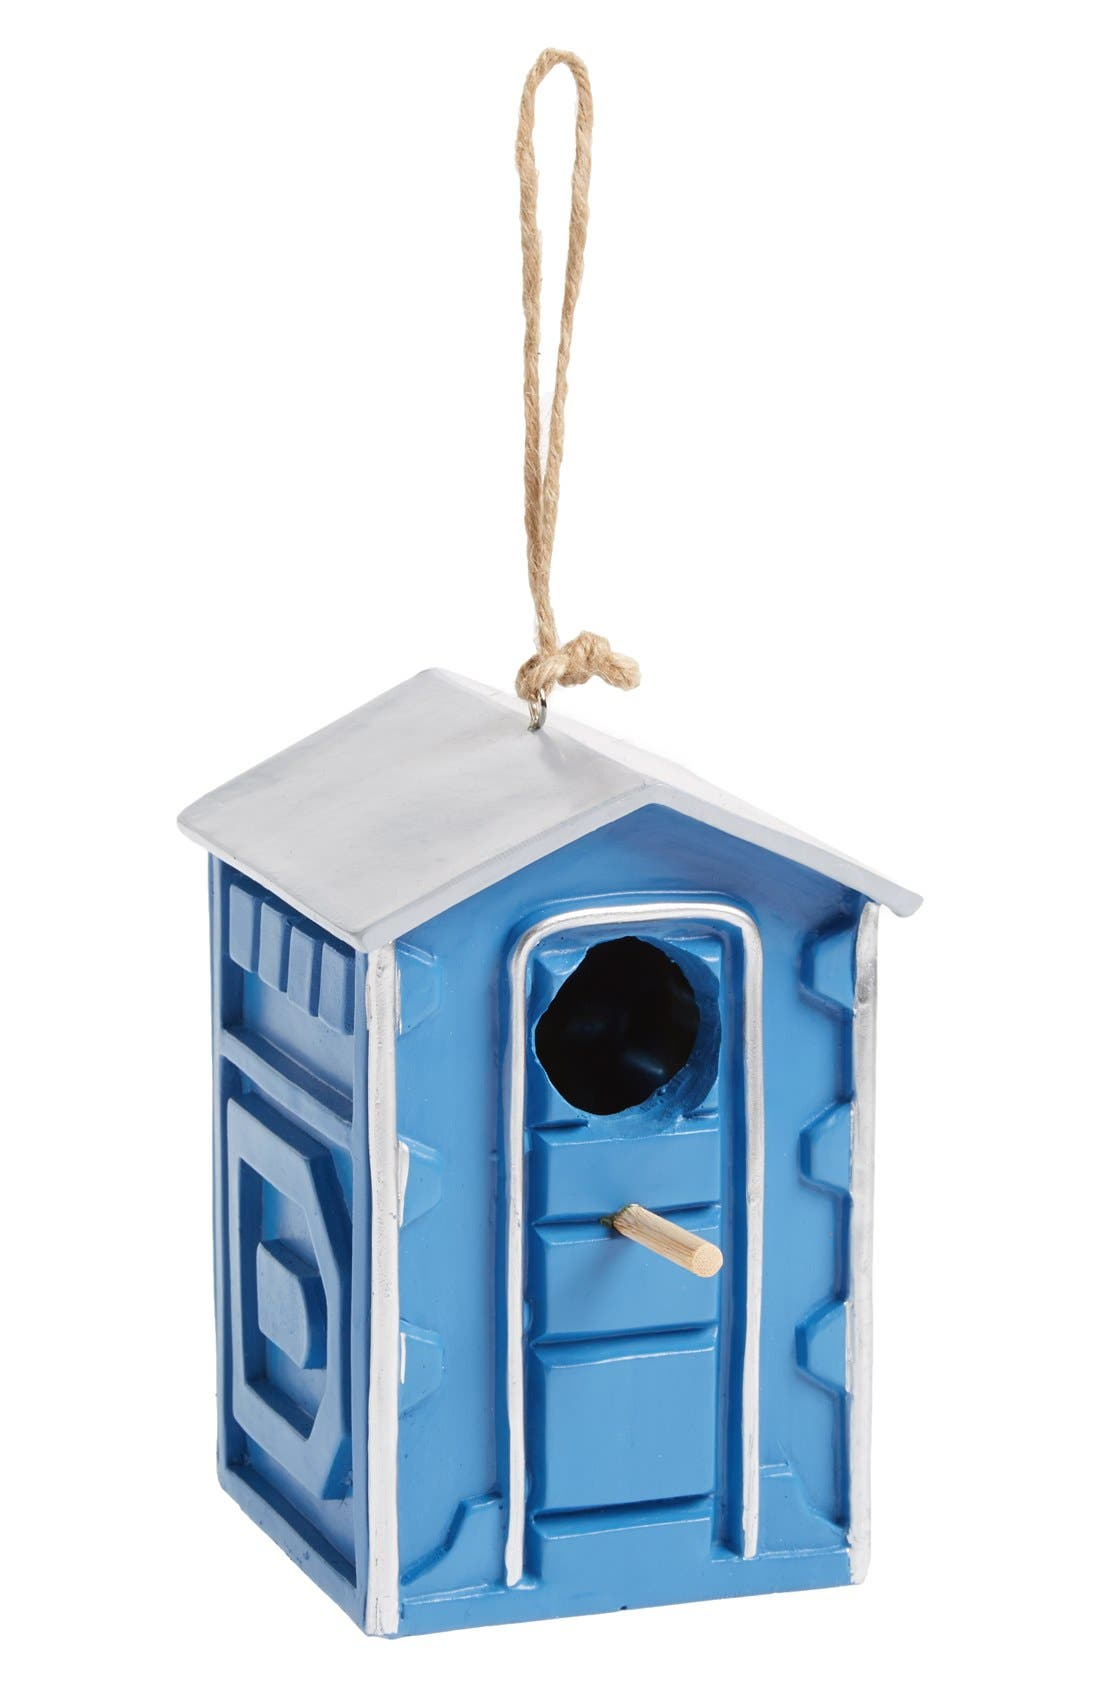 Alternate Image 1 Selected - Big Mouth Toys 'Portable Potty' Birdhouse